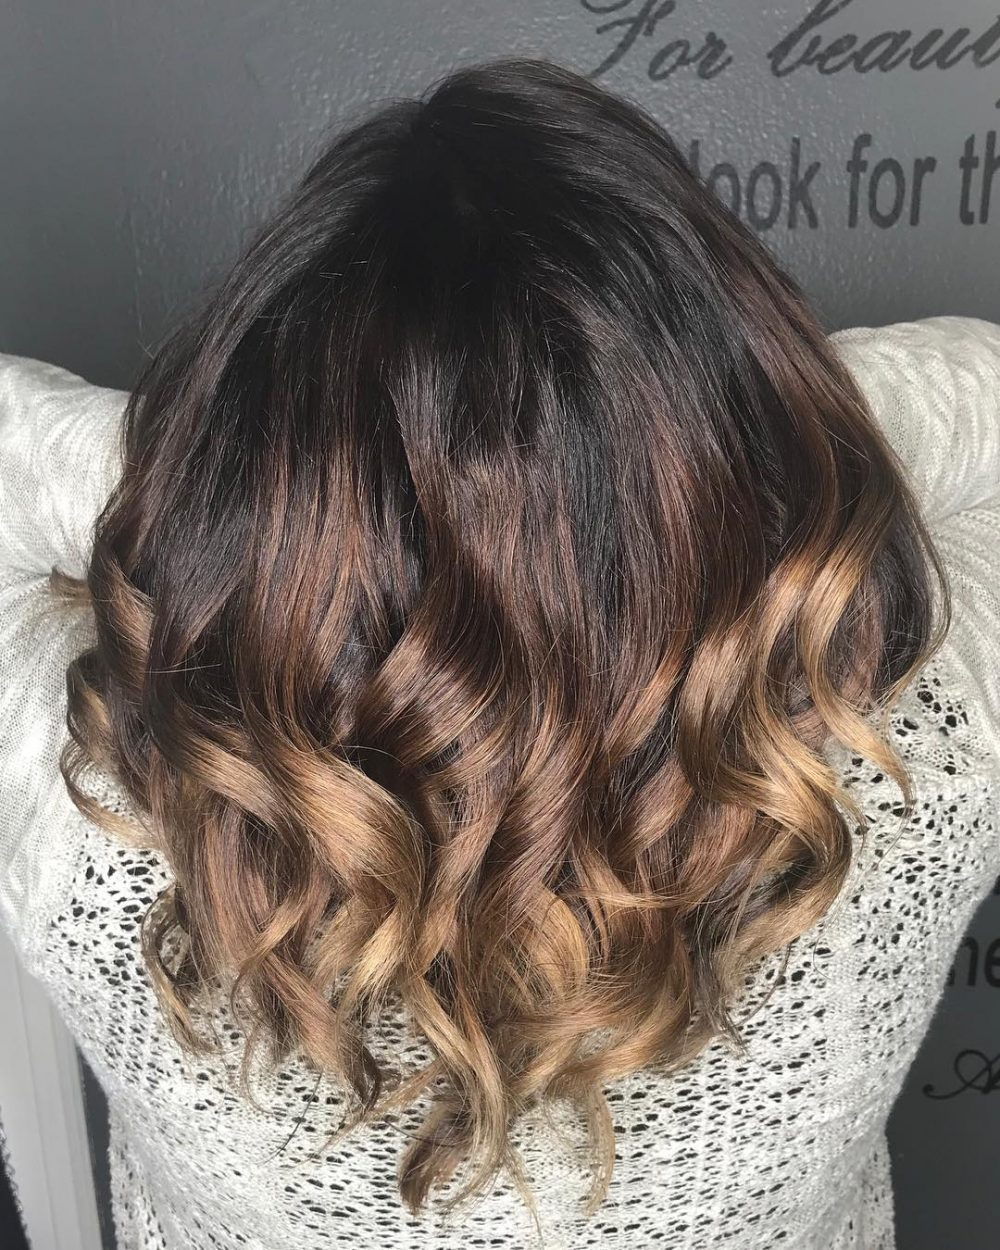 hair ombre styles top 32 ombre hair ideas of 2018 9045